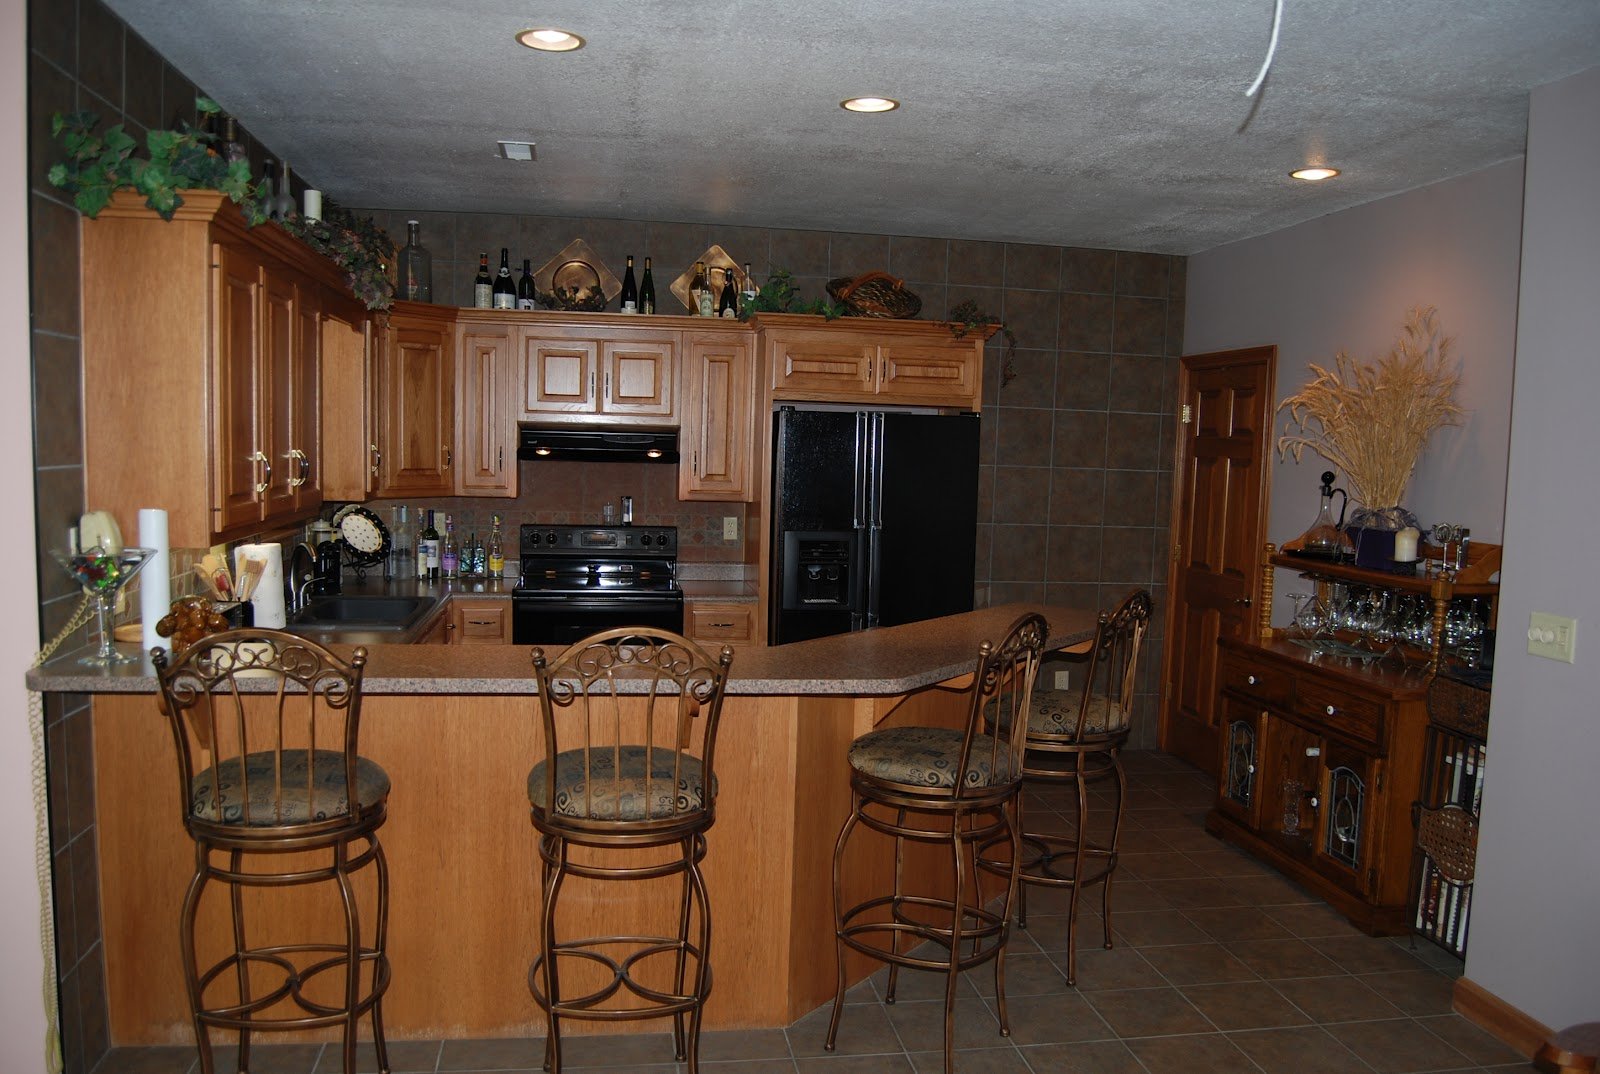 full kitchen with lots of beautiful cabinets and tile accents